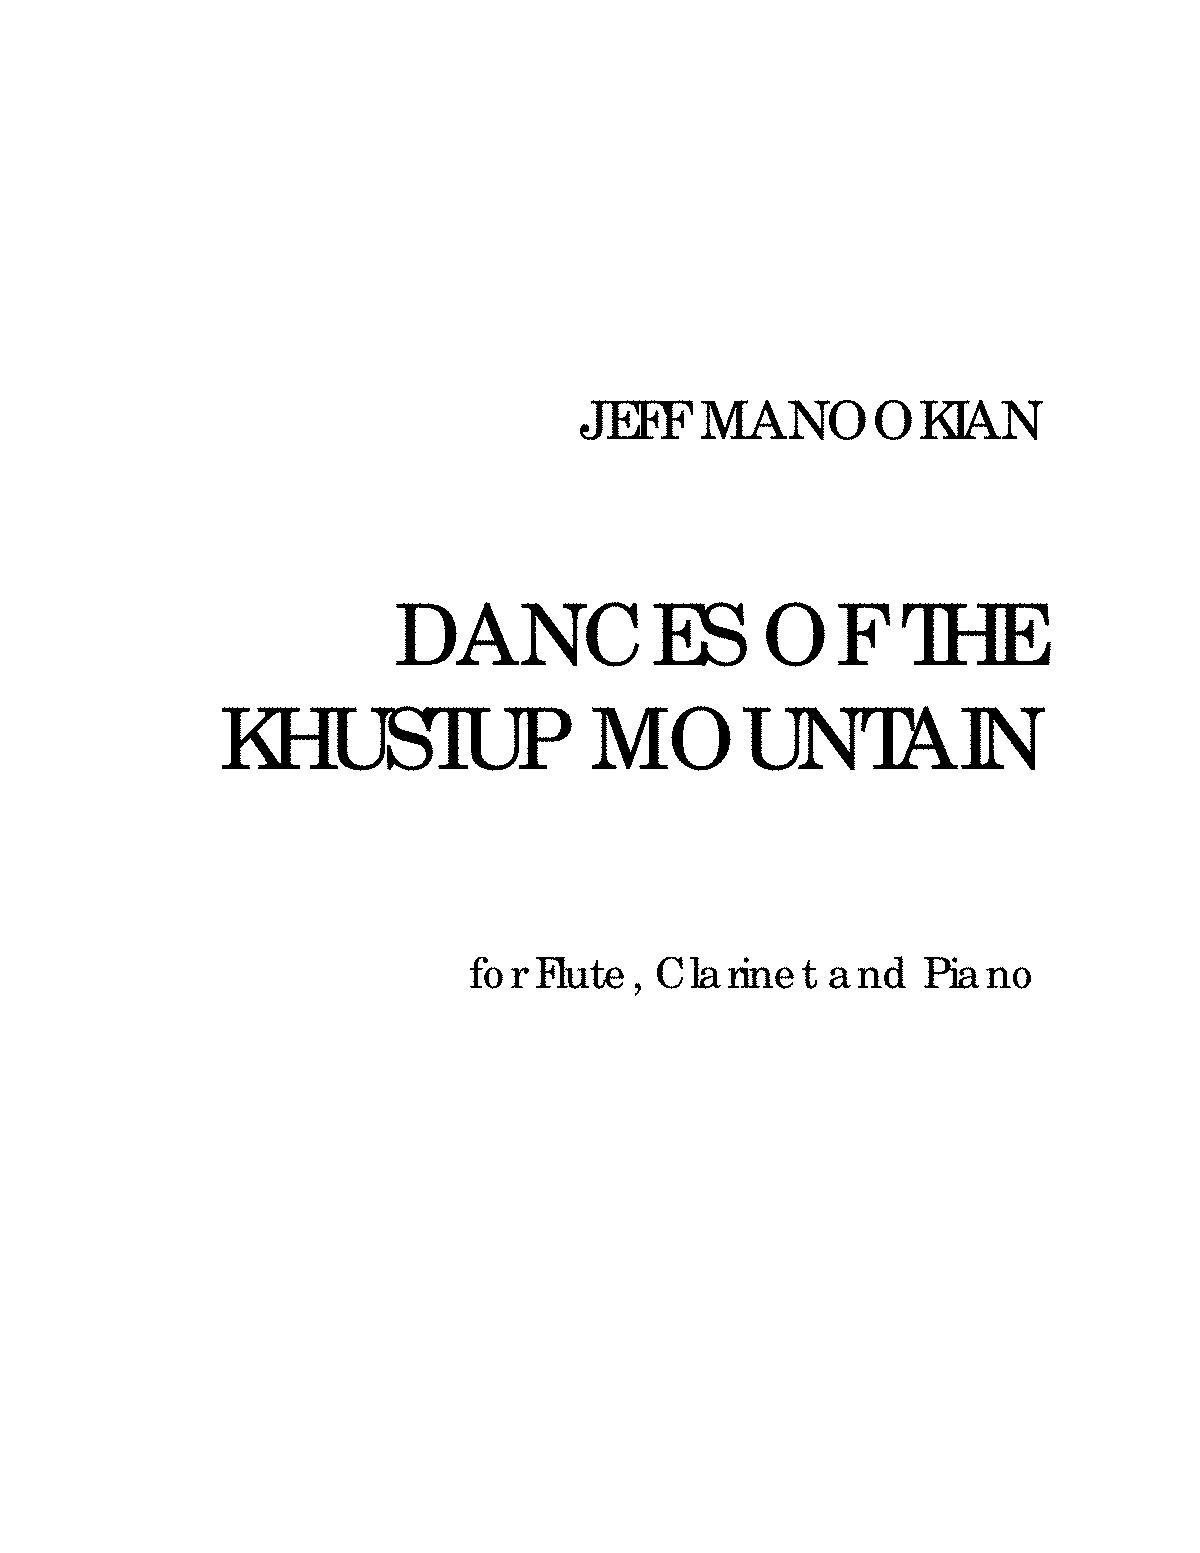 PMLP257806-KHUSTUP DANCES Full Score.pdf